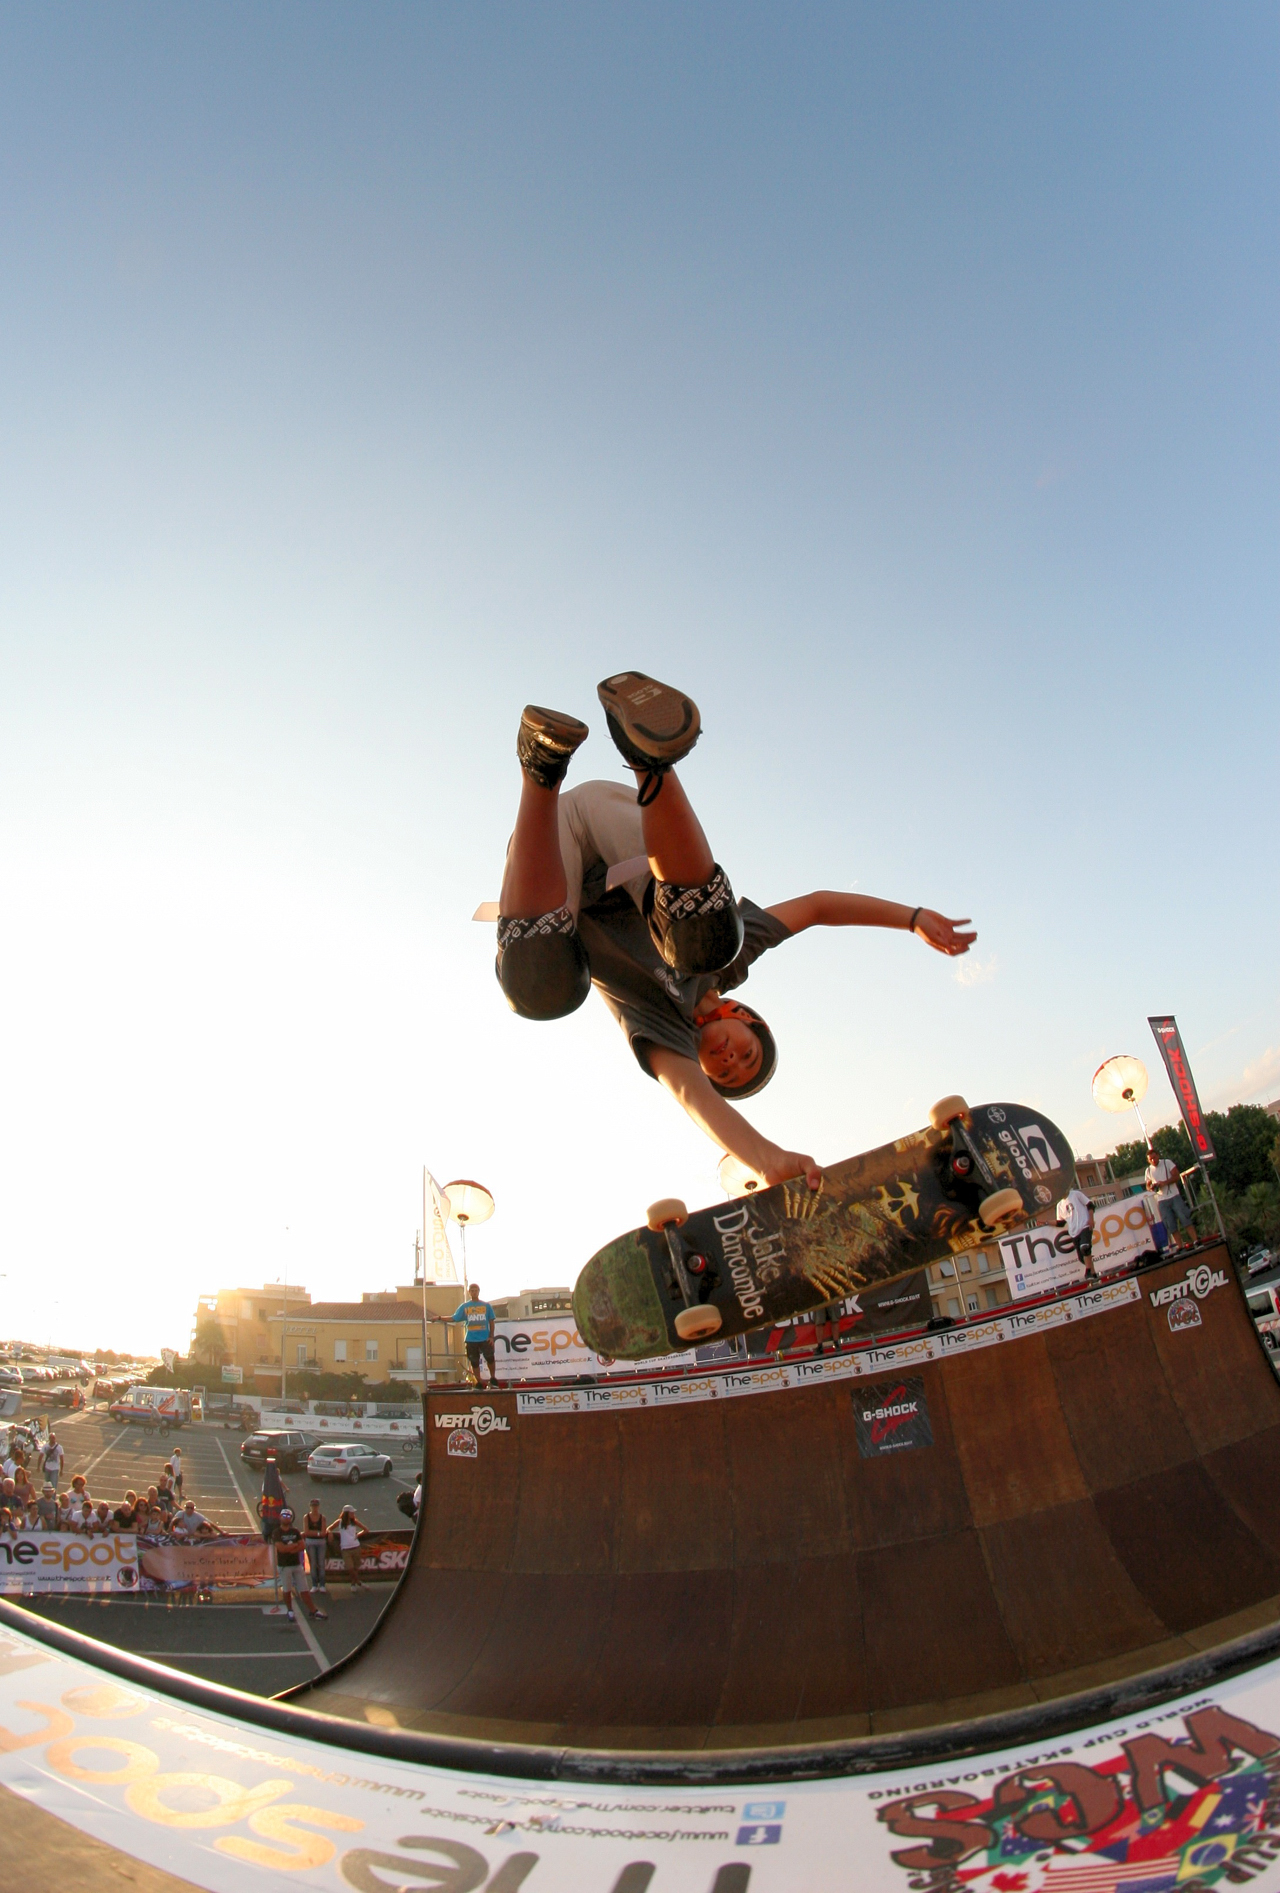 Skateboard Alex Sorgente from Worl Cup Skateboarding 2011, Location: Ostia, Roma, Italy